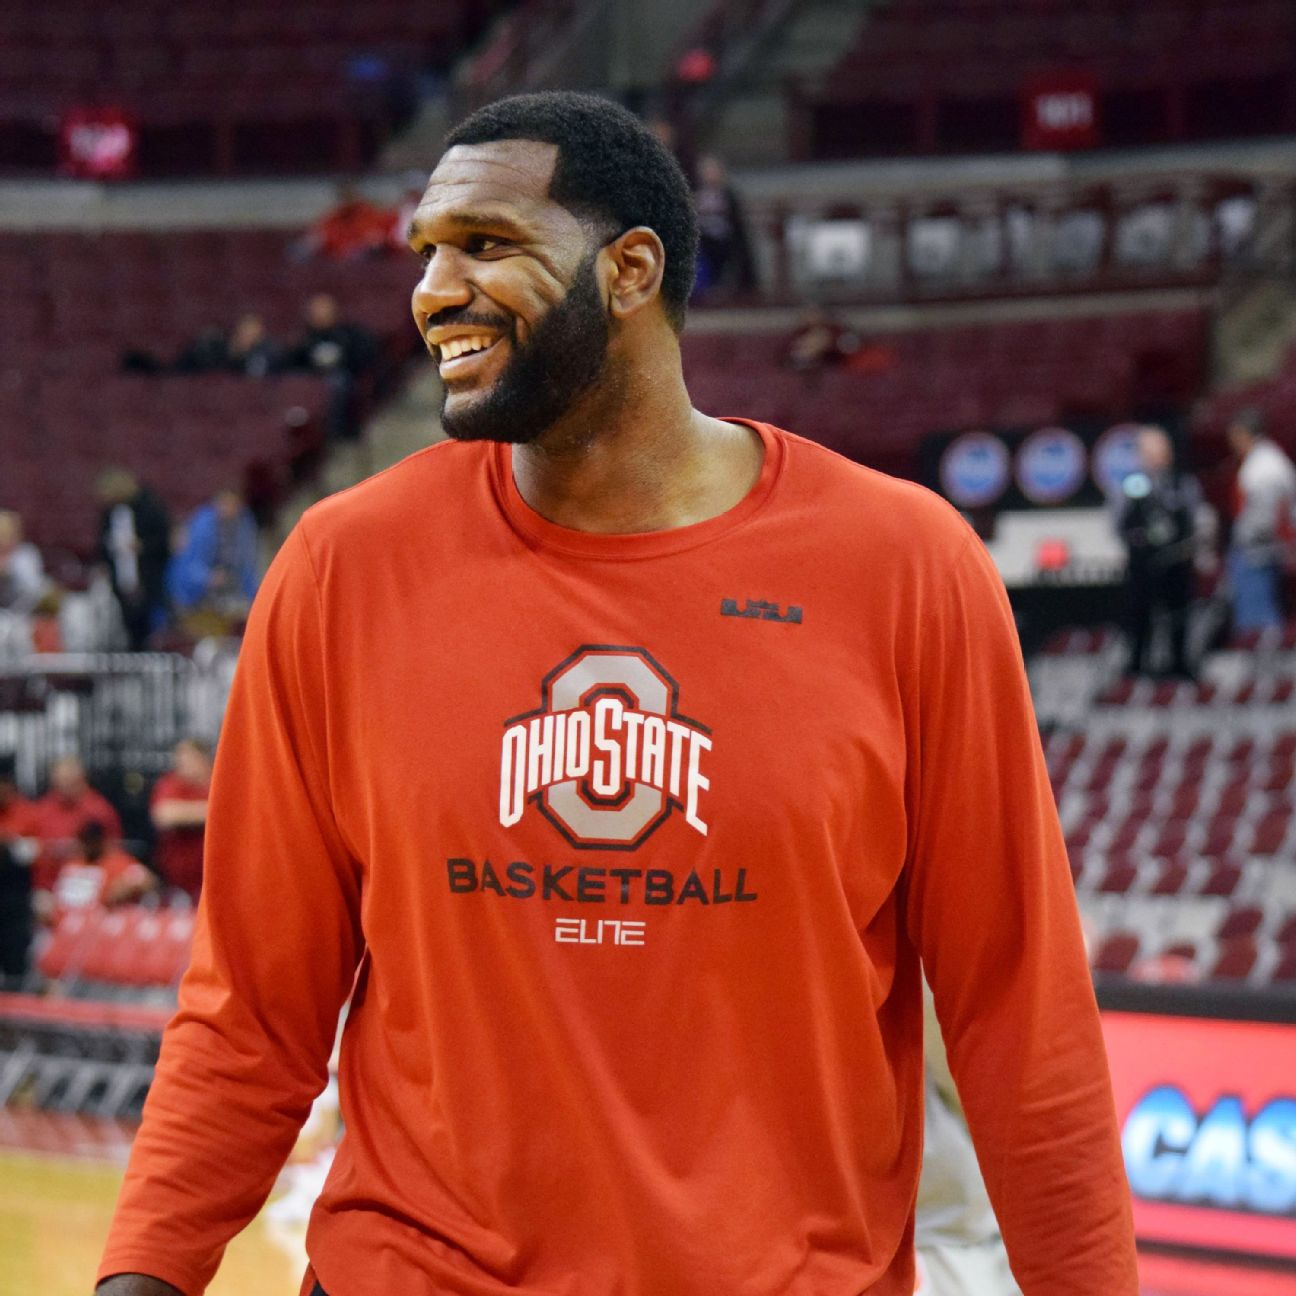 Blazers Basketball Reference: Greg Oden Is Trying To Find Himself After A Failed